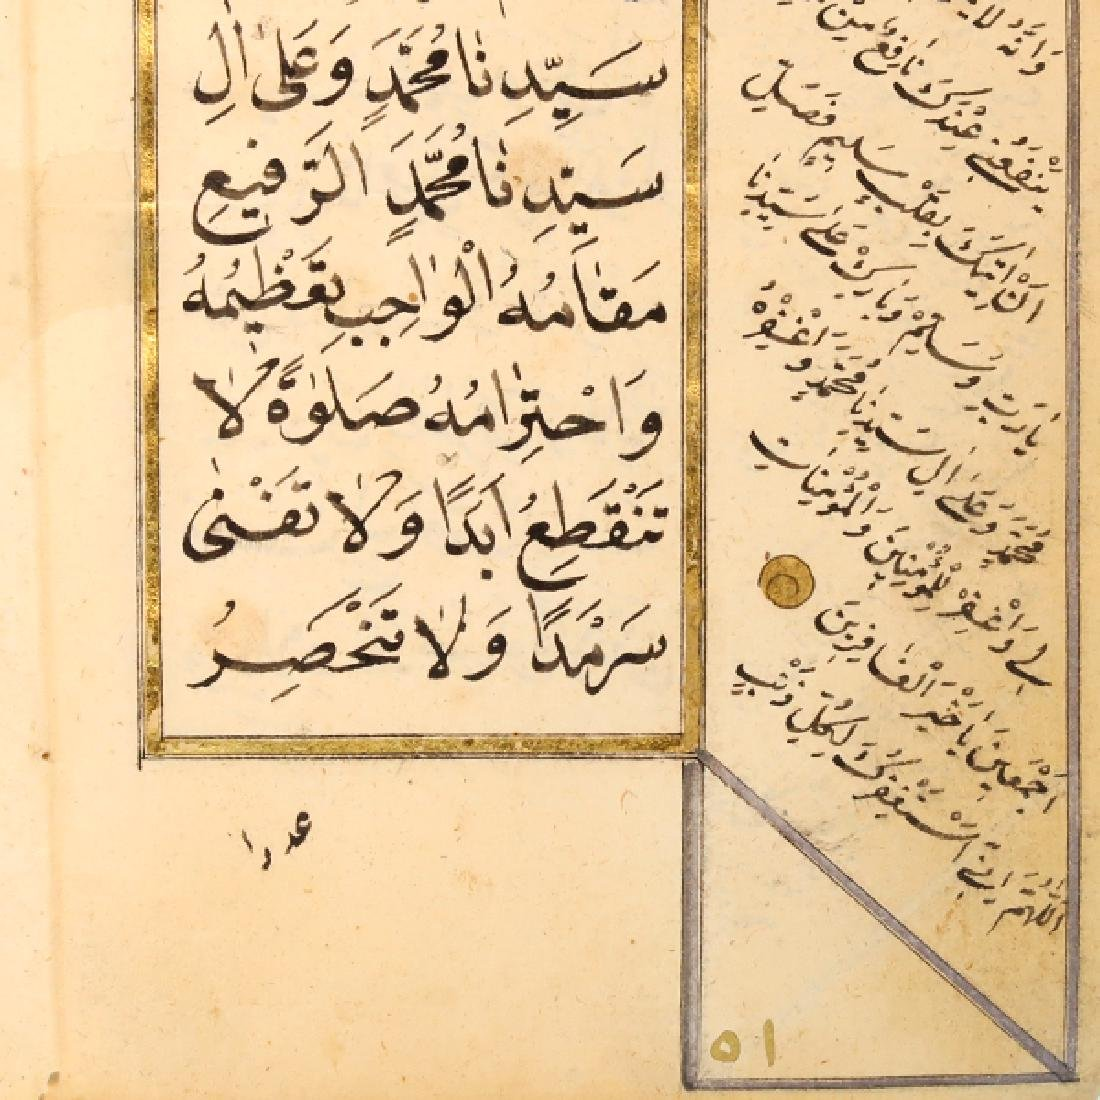 Arabic Illuminated/Gilt Manuscript, Near East, c. 16th - 4